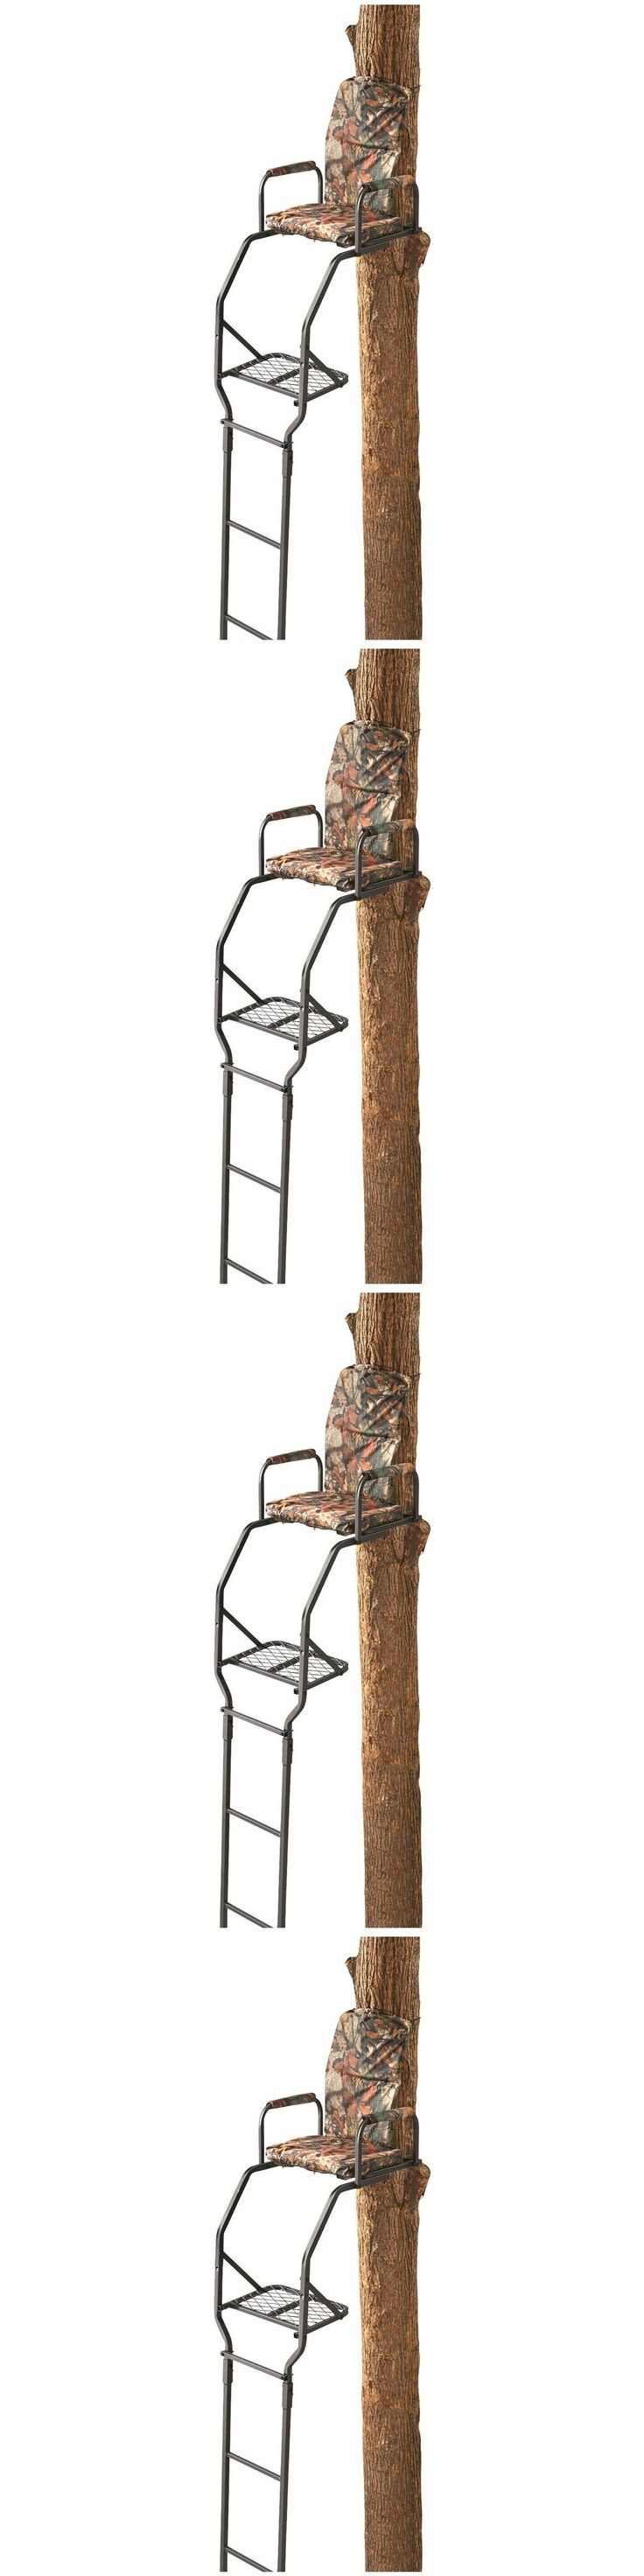 Tree Stands 52508: Ladder Tree Stand 16 Hunting Big Game Deer Shooting Steel Seat Harness Included -> BUY IT NOW ONLY: $102.69 on eBay!